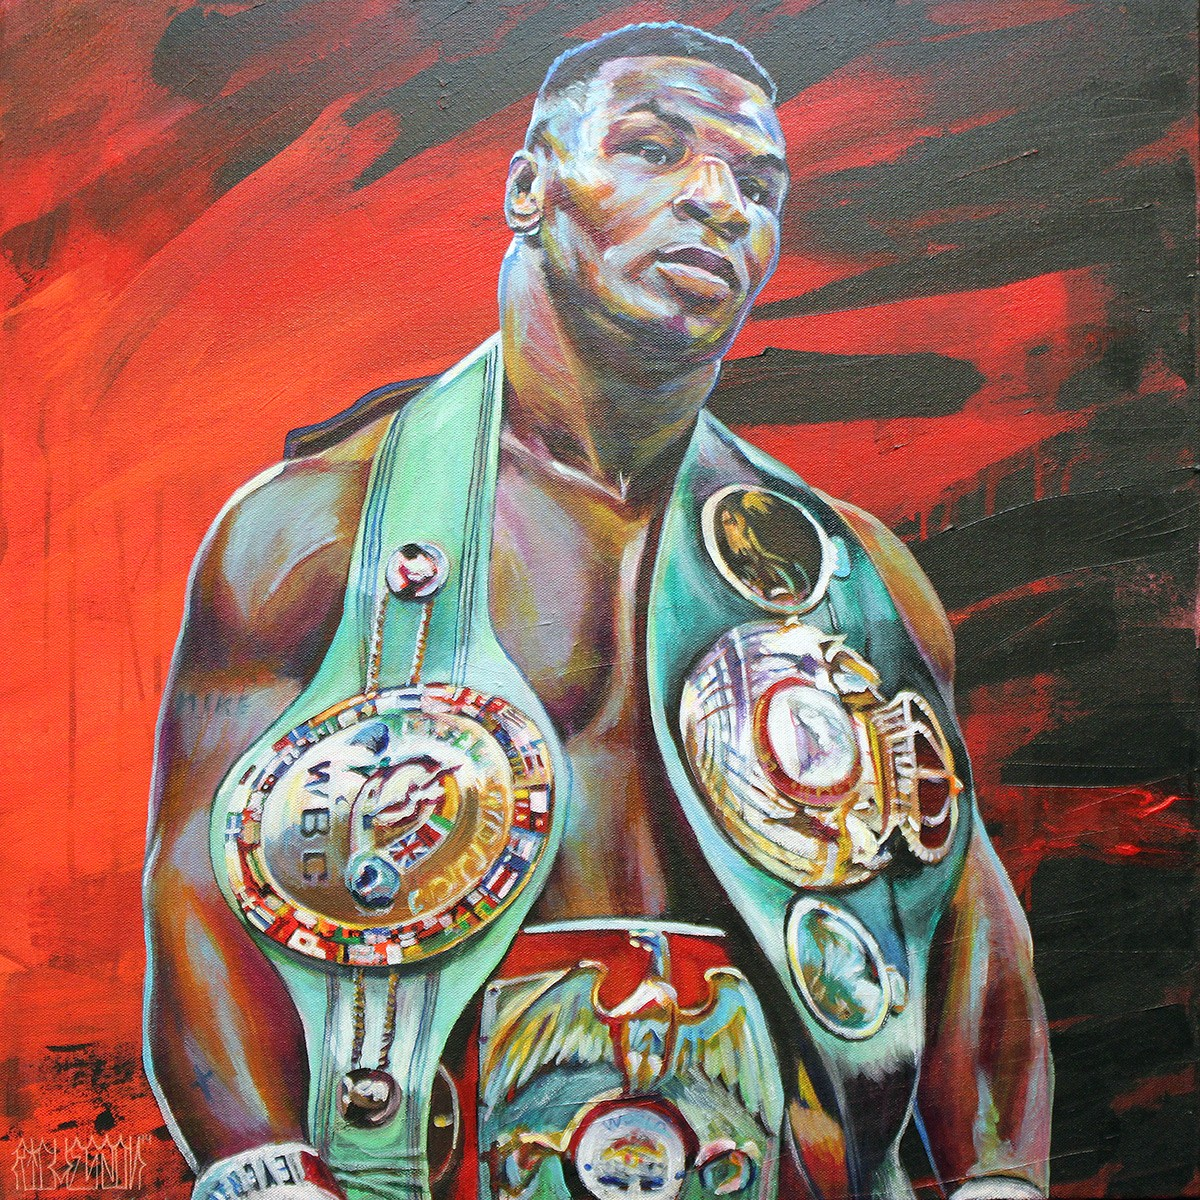 2012 02 01 archive moreover Index as well Desportes as well Famous Boxers moreover Hobrecht Sports Art Laguna Beach. on oscar de la hoya in paintings